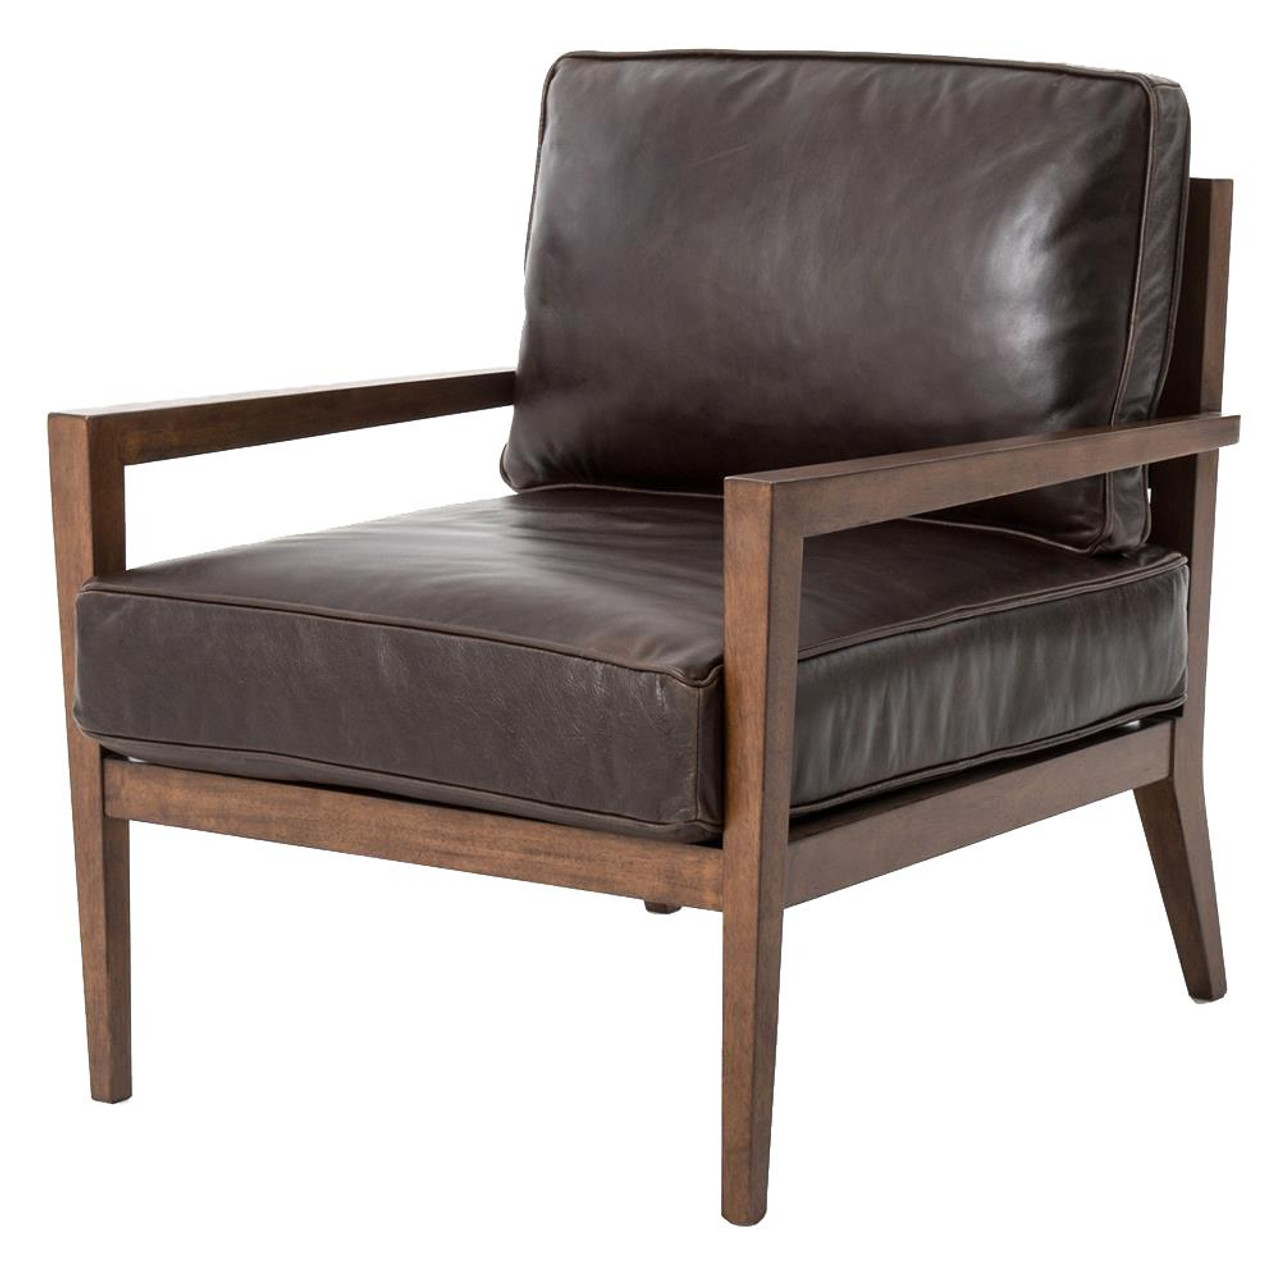 Delicieux Laurent Wood Frame Brown Leather Accent Chair